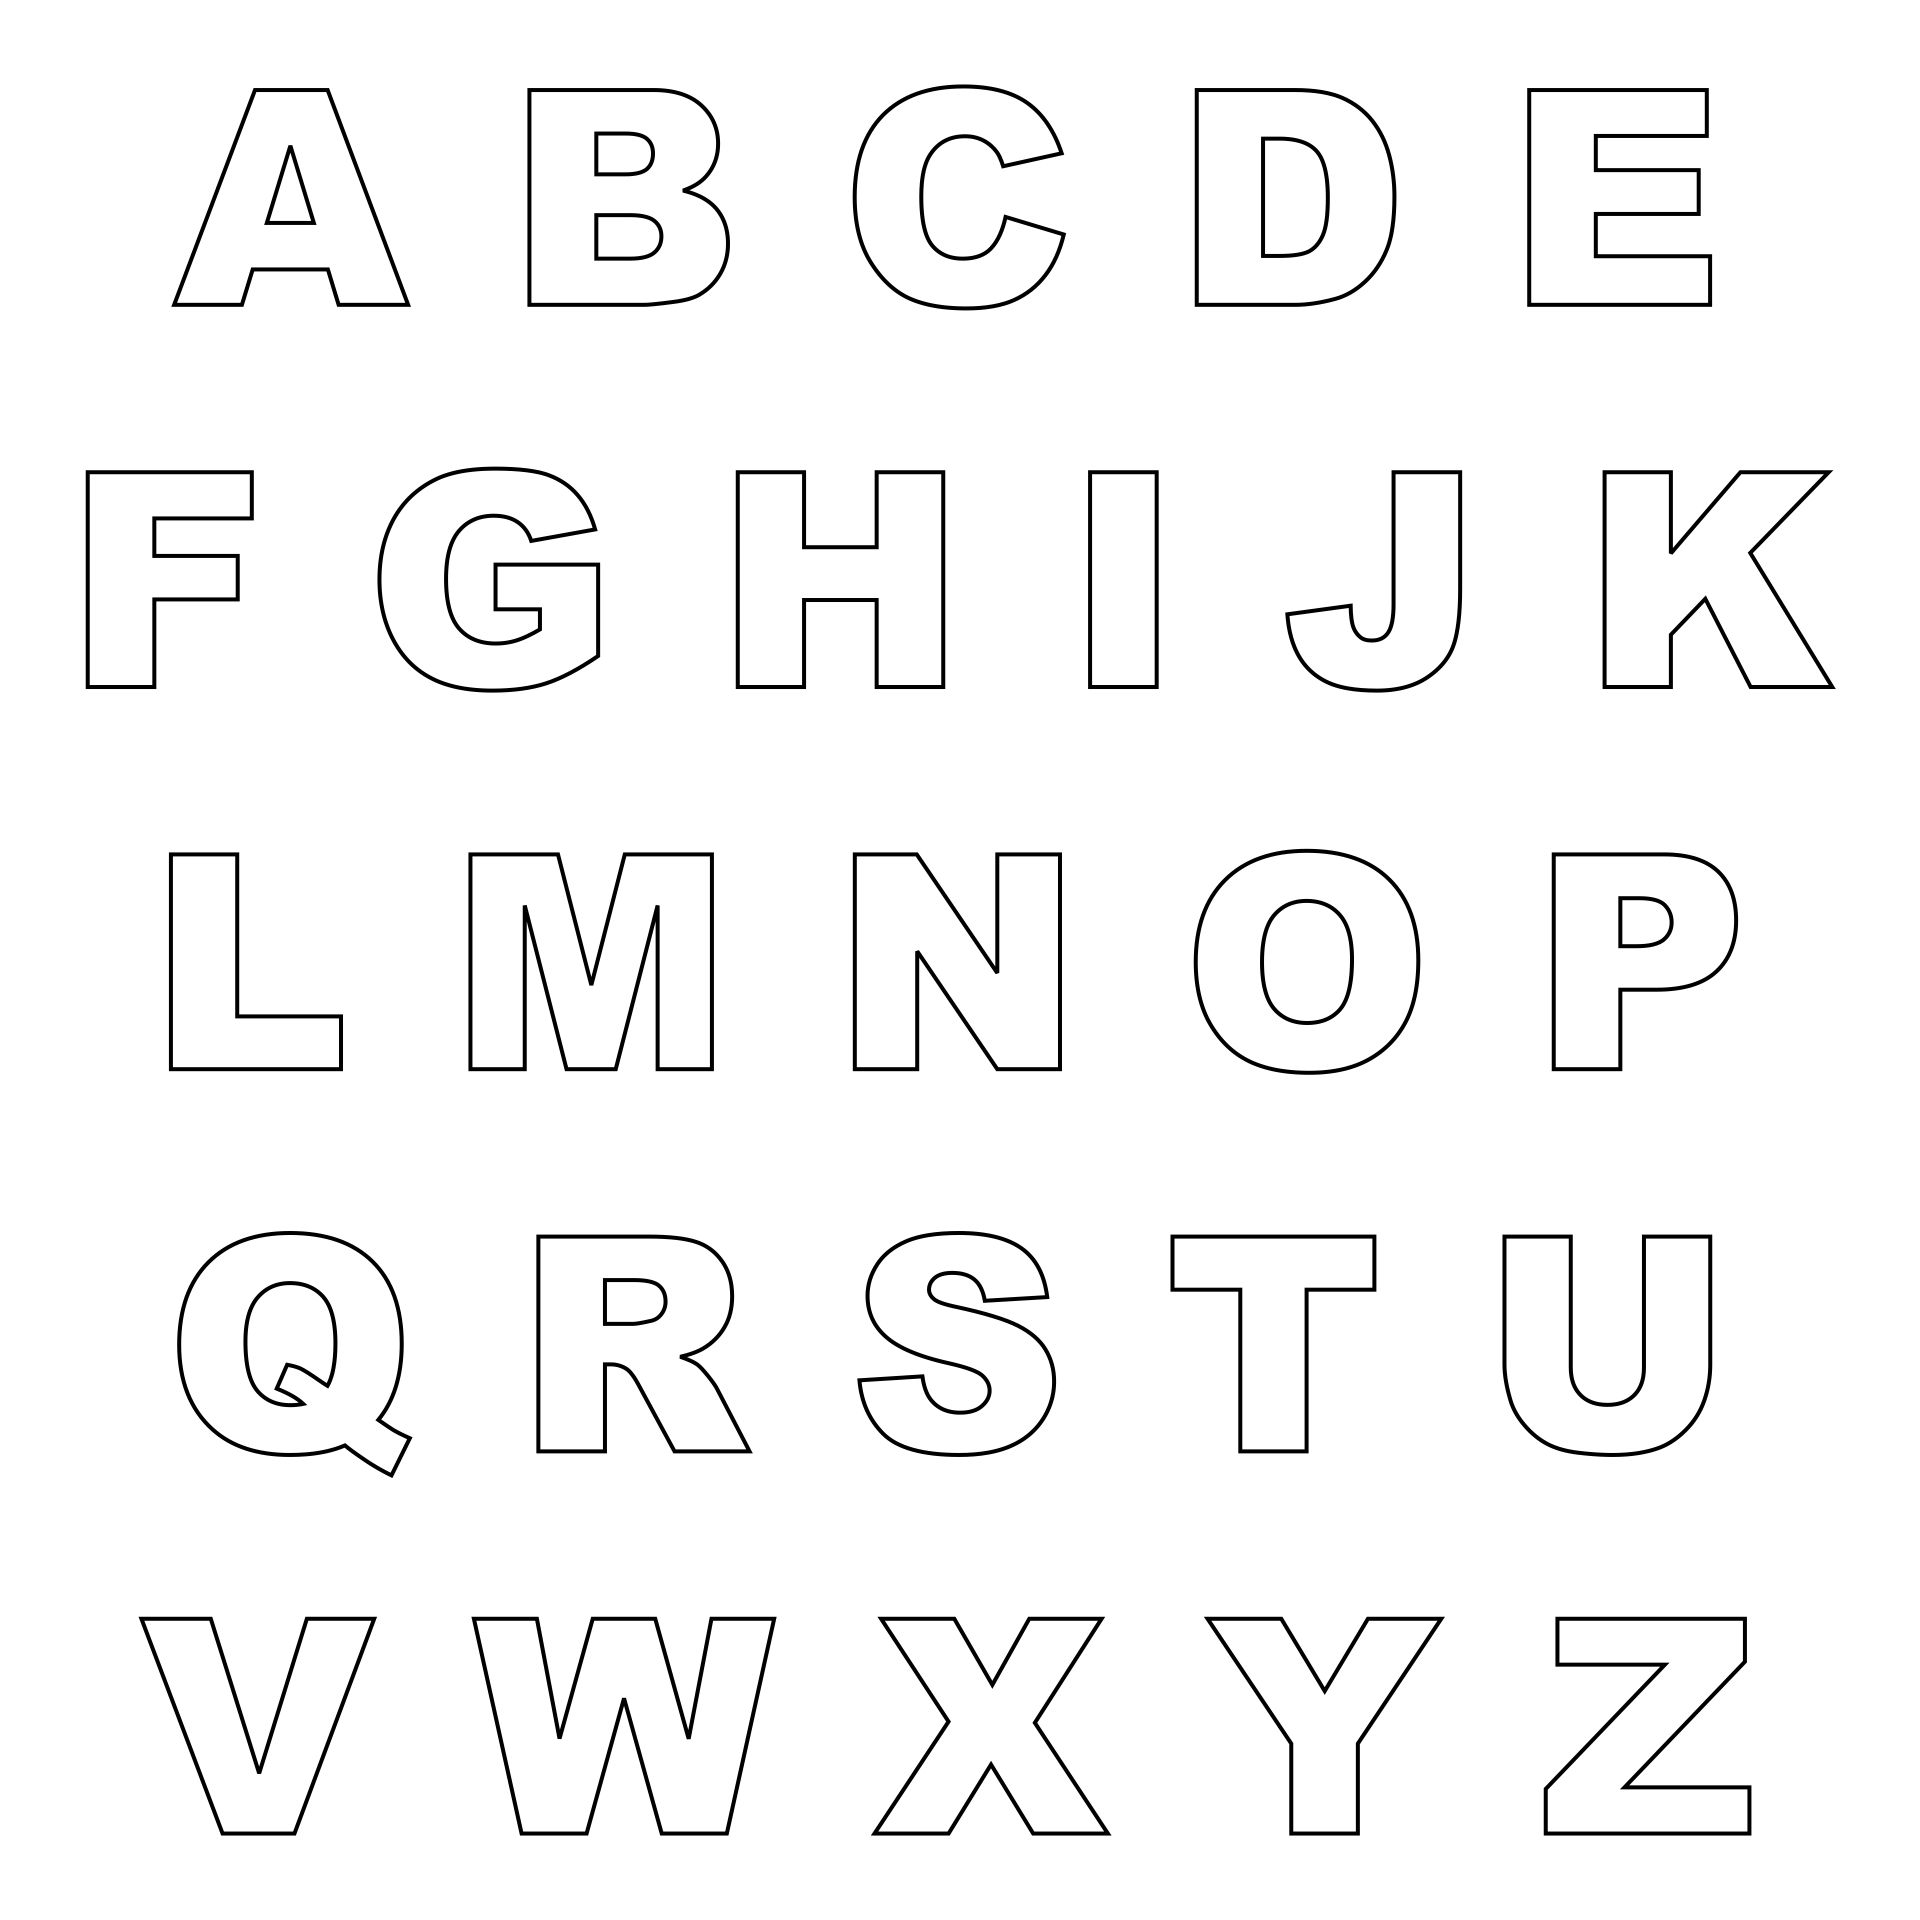 alphabet letter templates 6 best images of printable alphabet letters to cut small 20432